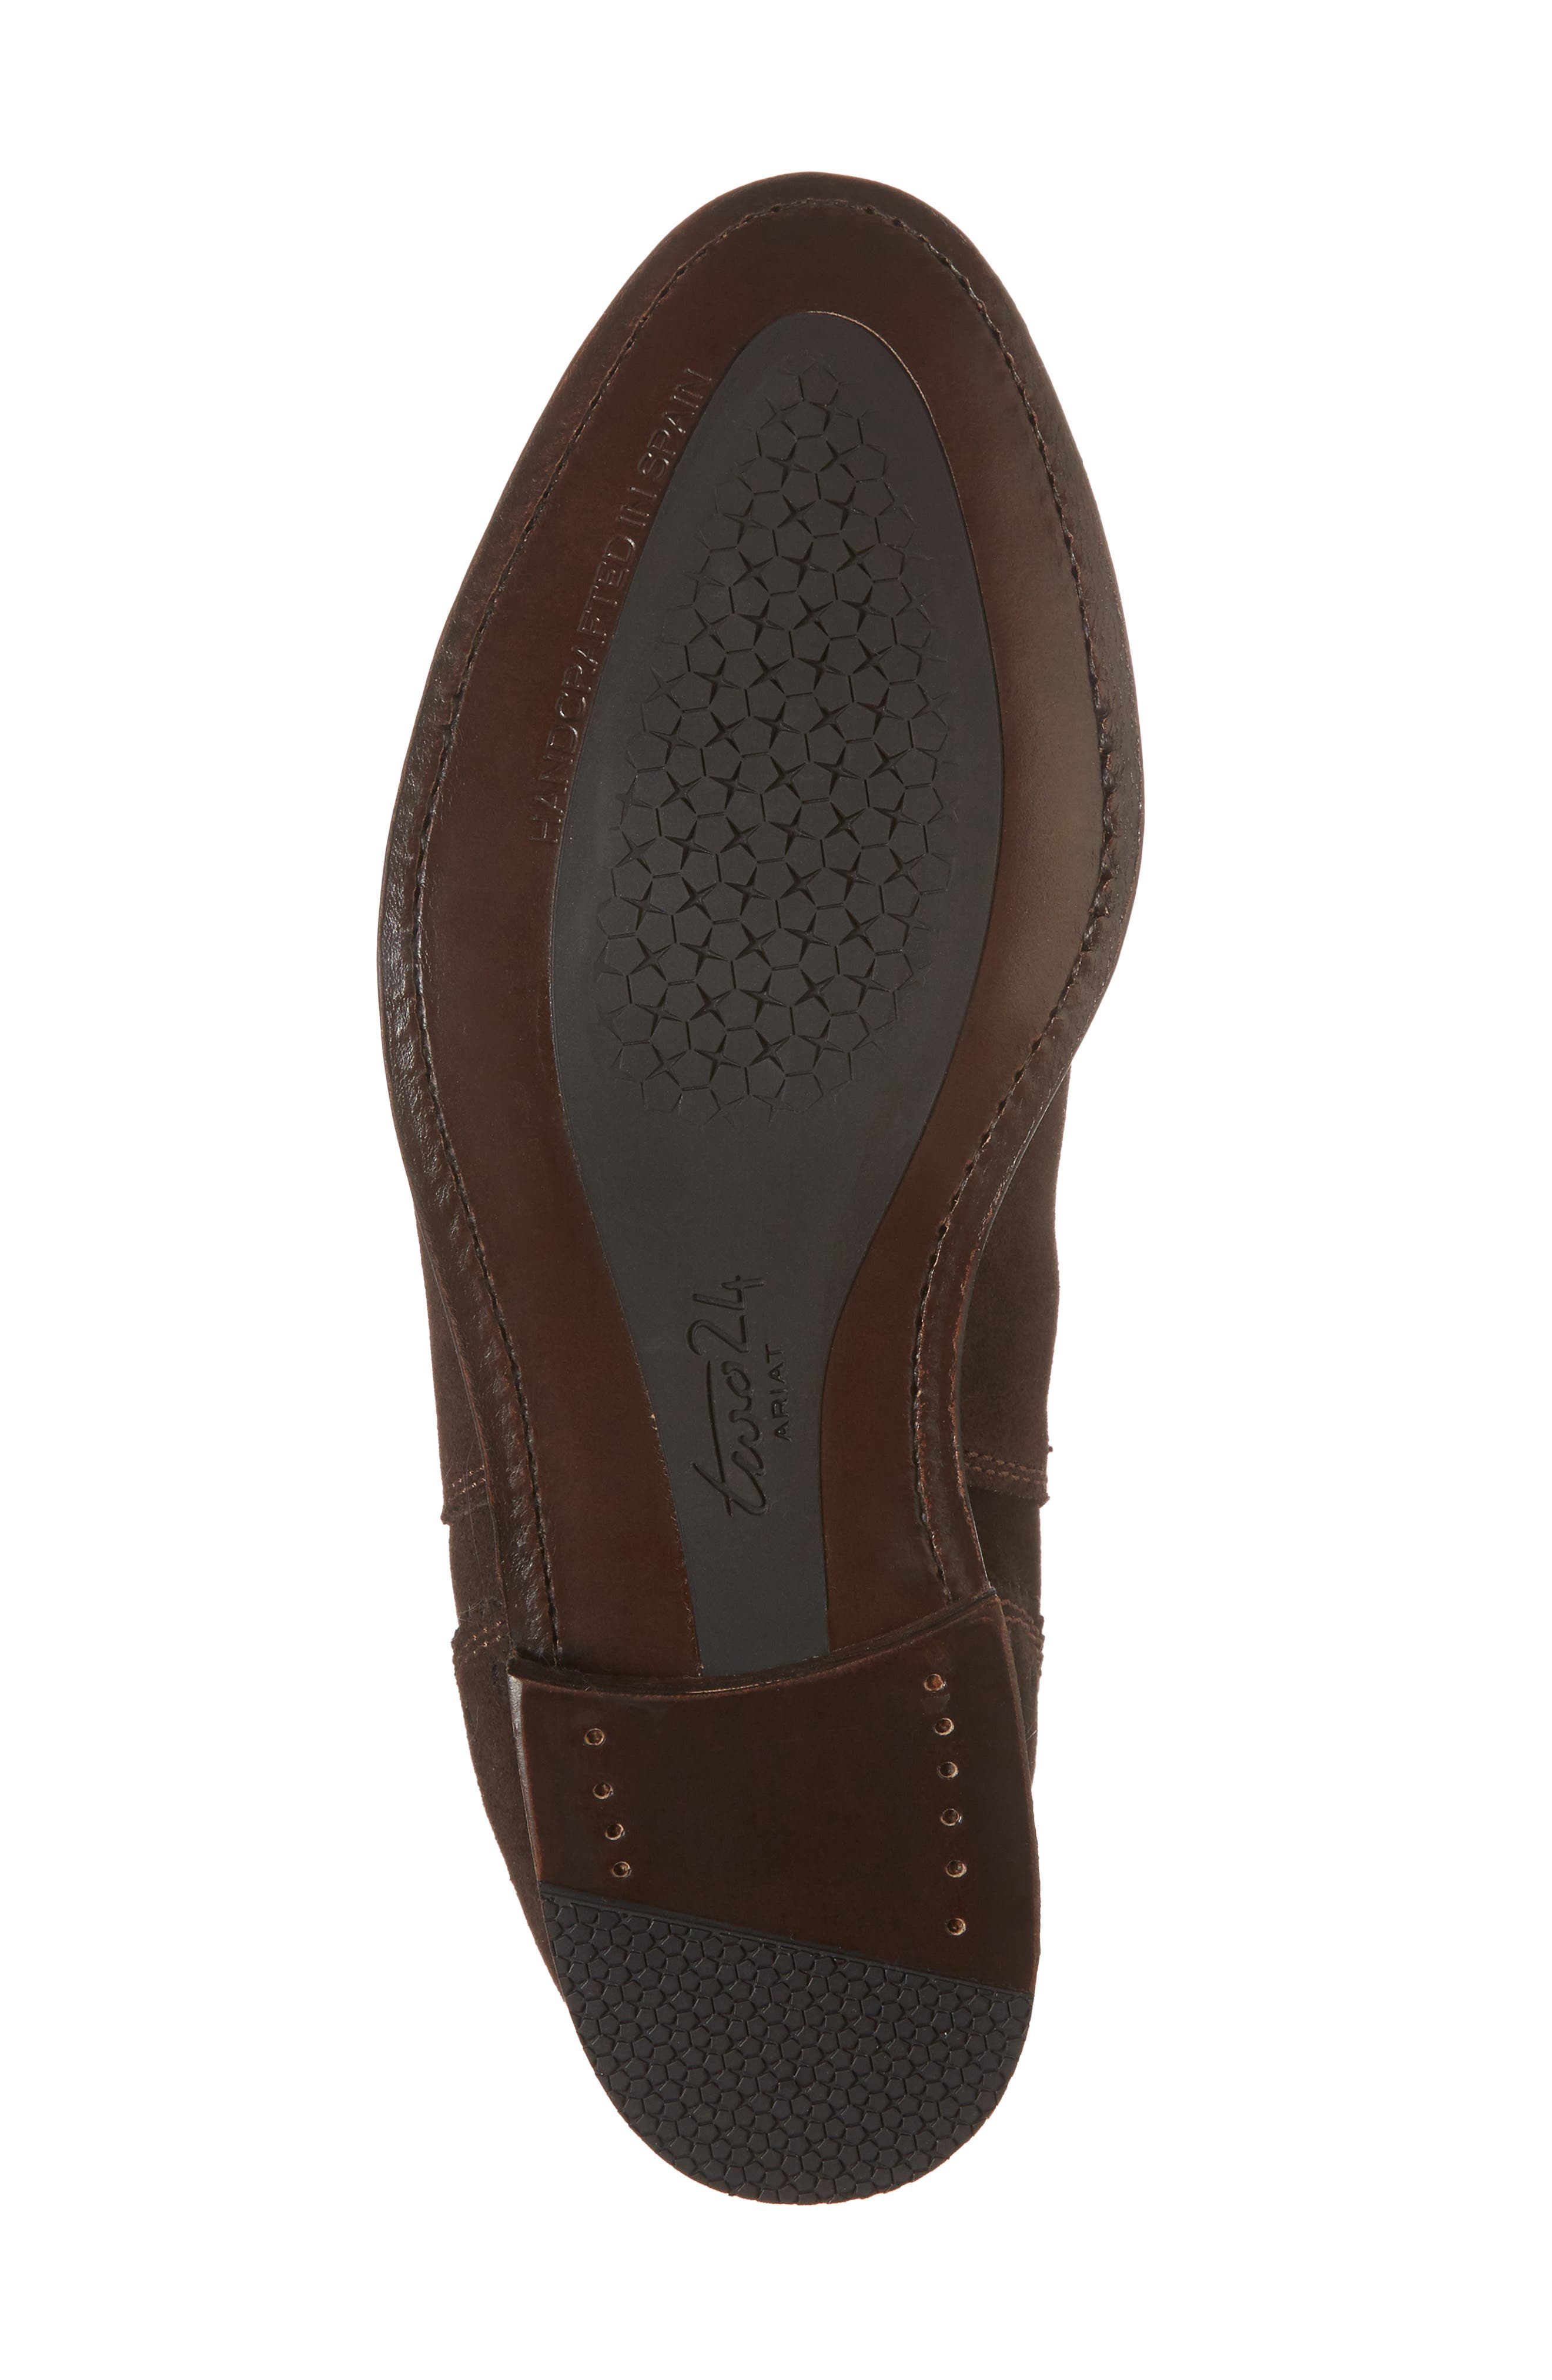 Benissa Lux Chelsea Boot,                             Alternate thumbnail 6, color,                             Brown Suede